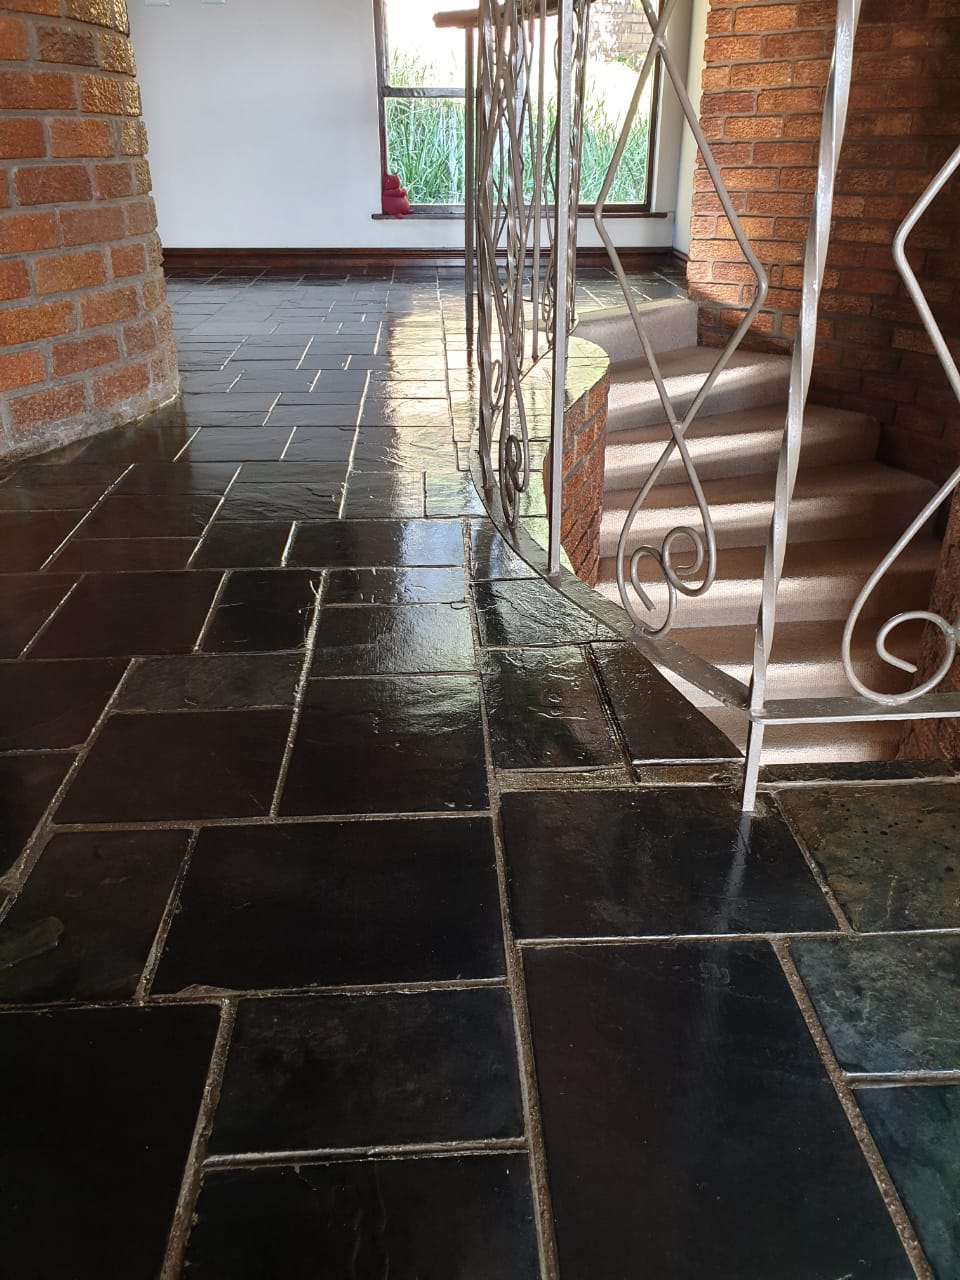 Waterproofing for Tiles - WaterKote Waterproof Coating